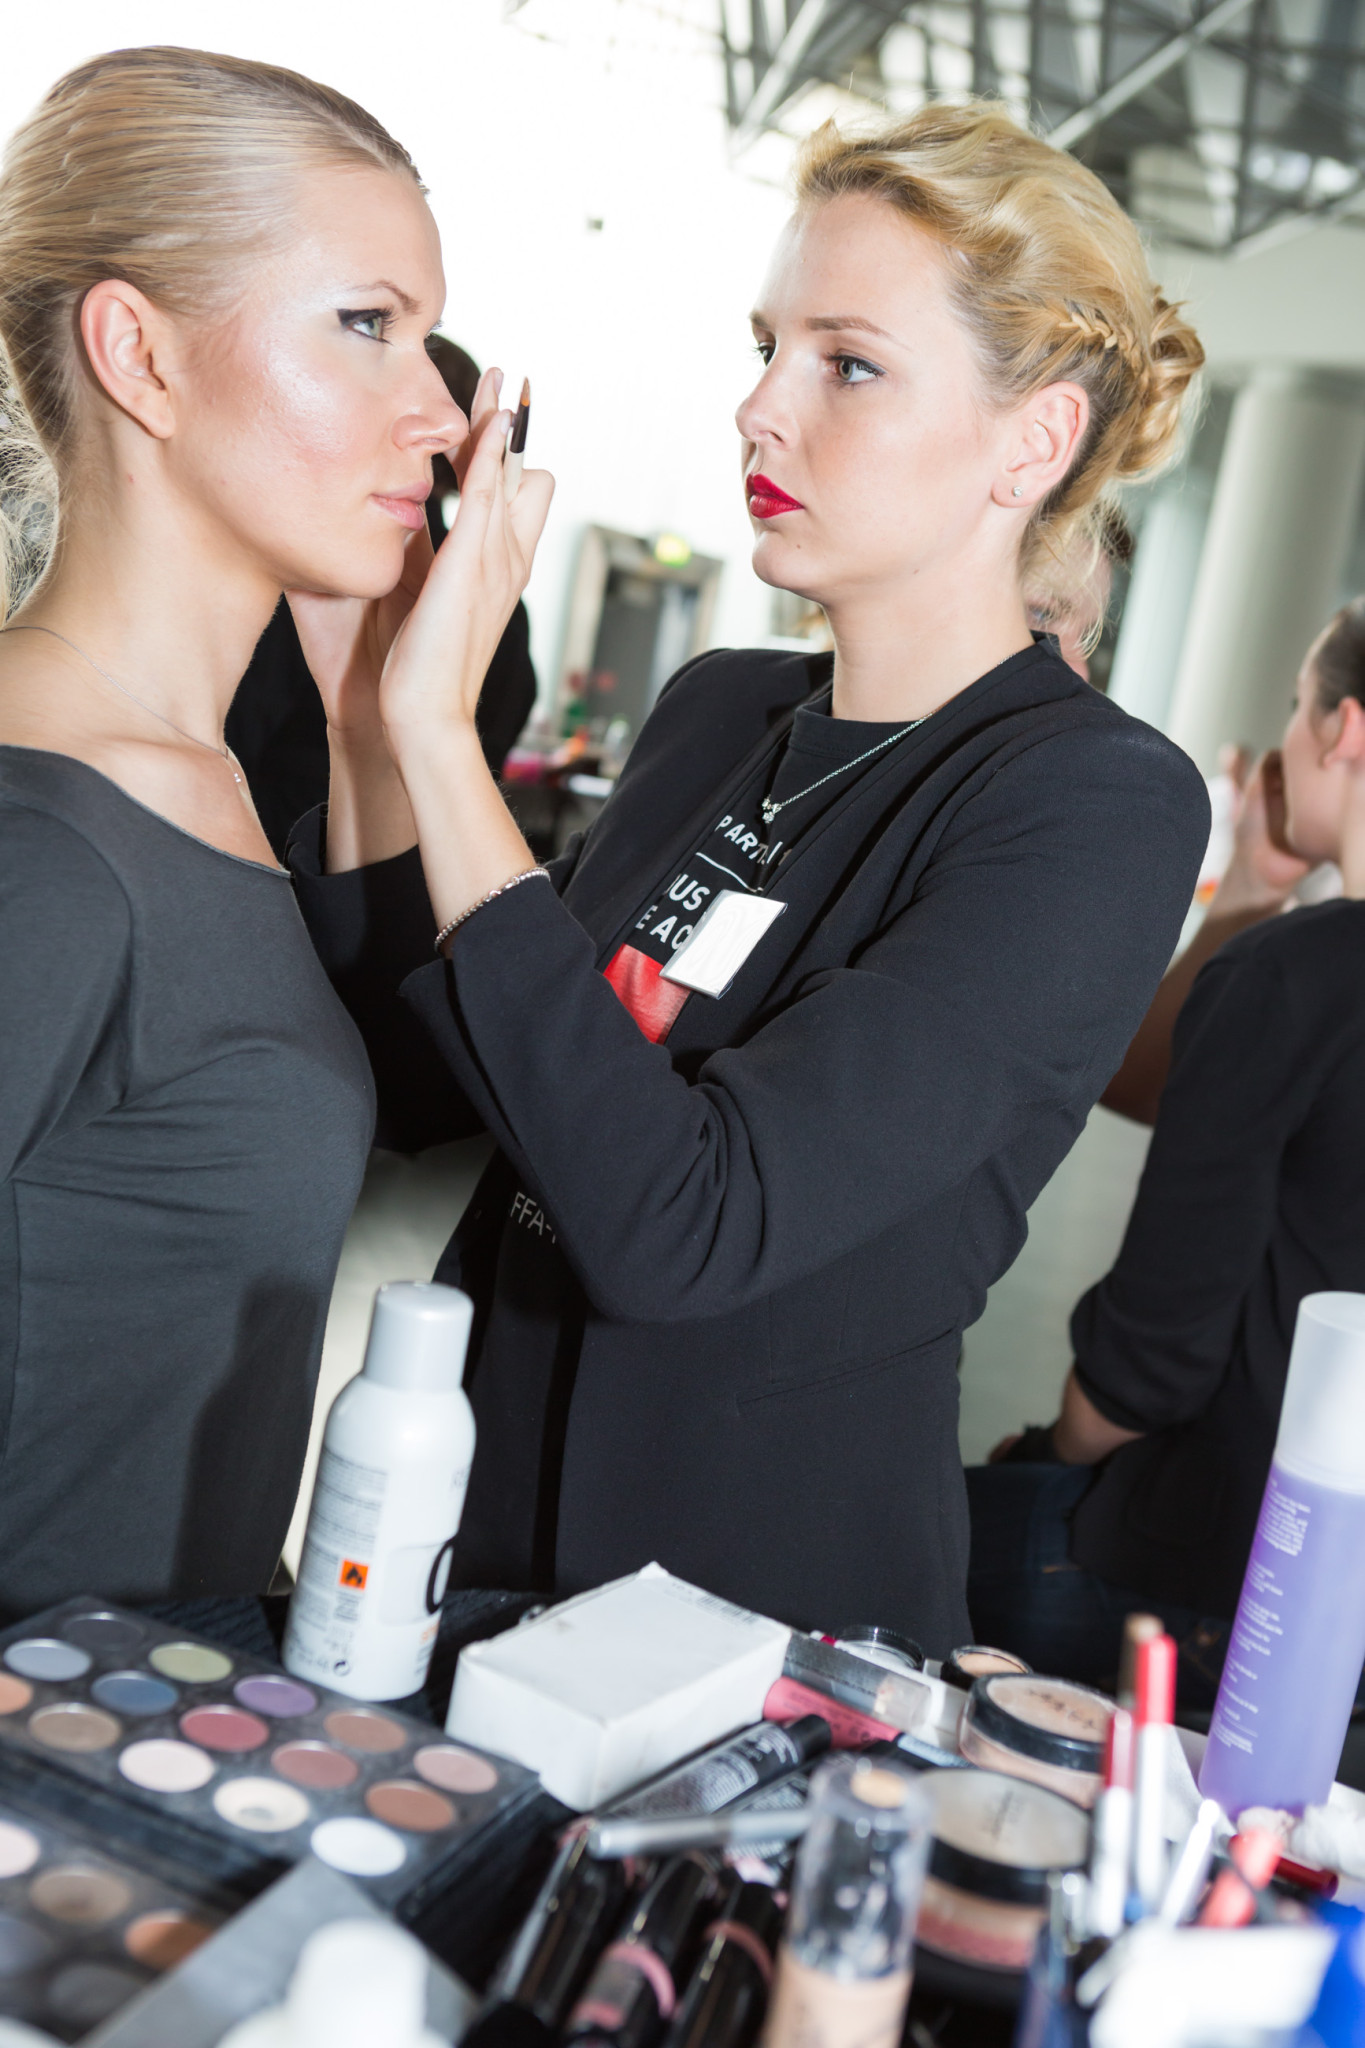 A dark and wide Eyeliner was the key look of the styling for the FRANKFURT STYLE AWARD 2013.